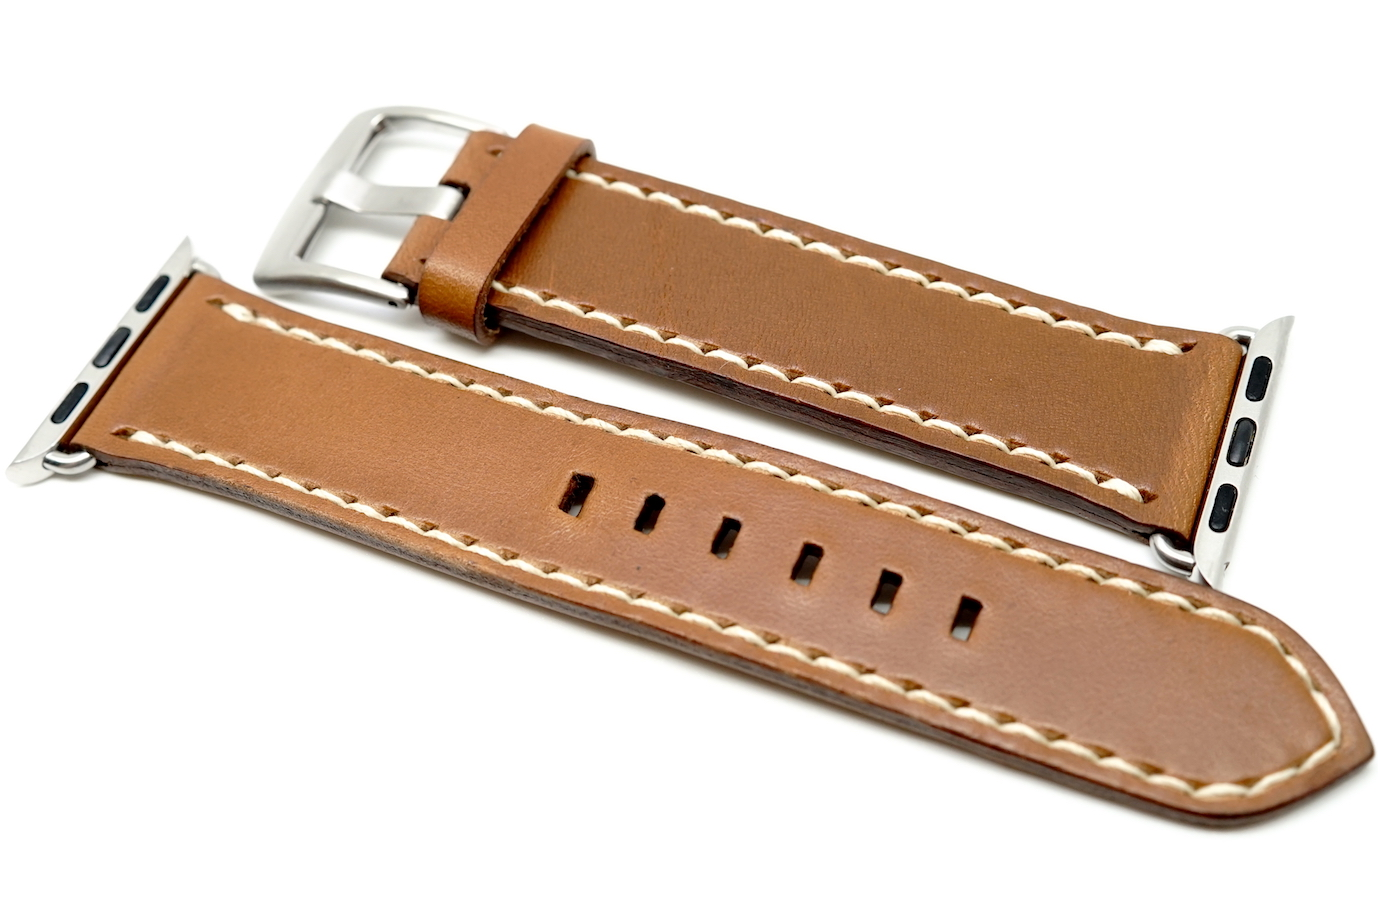 outline-leather-satchel-brown-apple-watch-strap-14